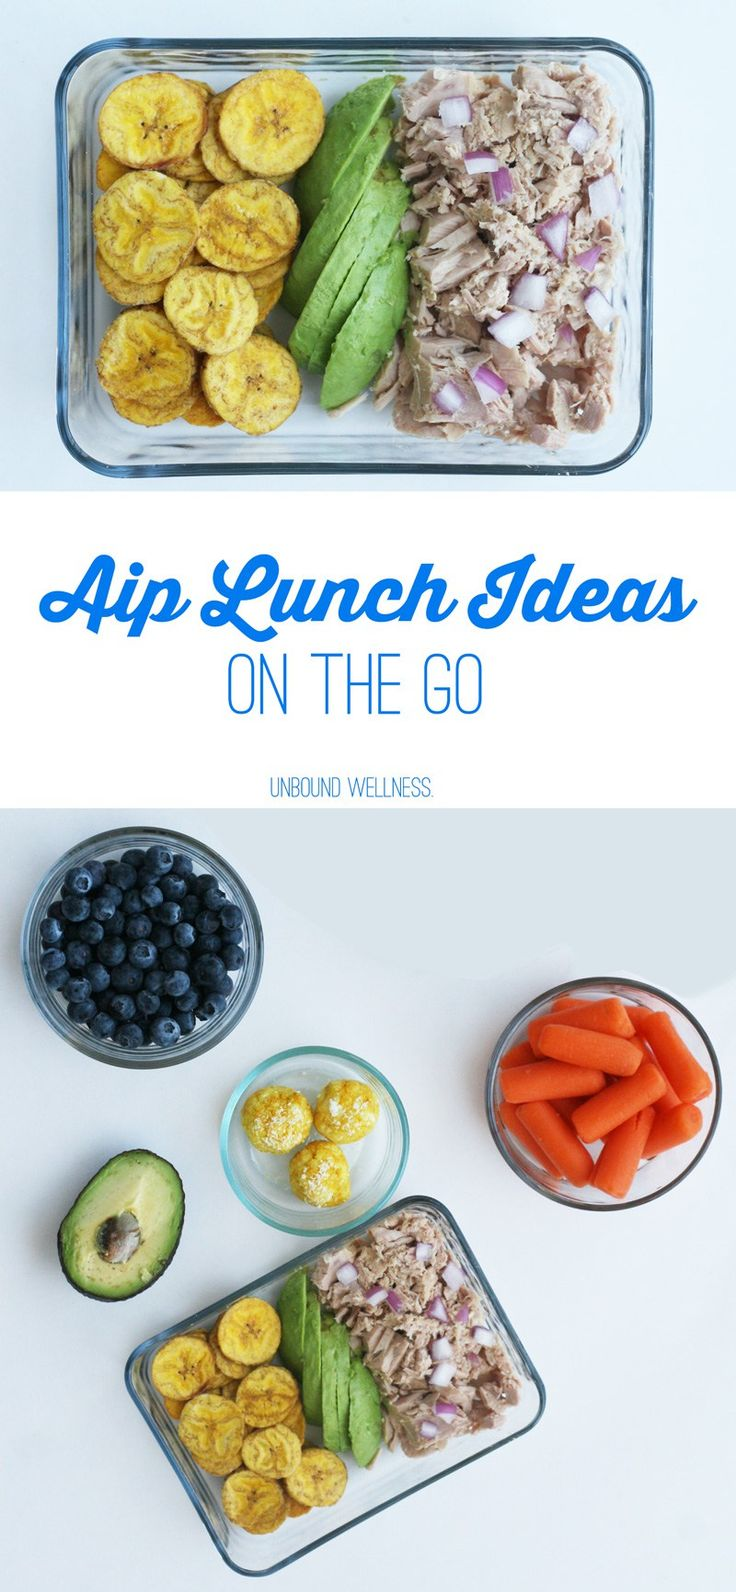 Easy AIP Lunch Ideas on the go